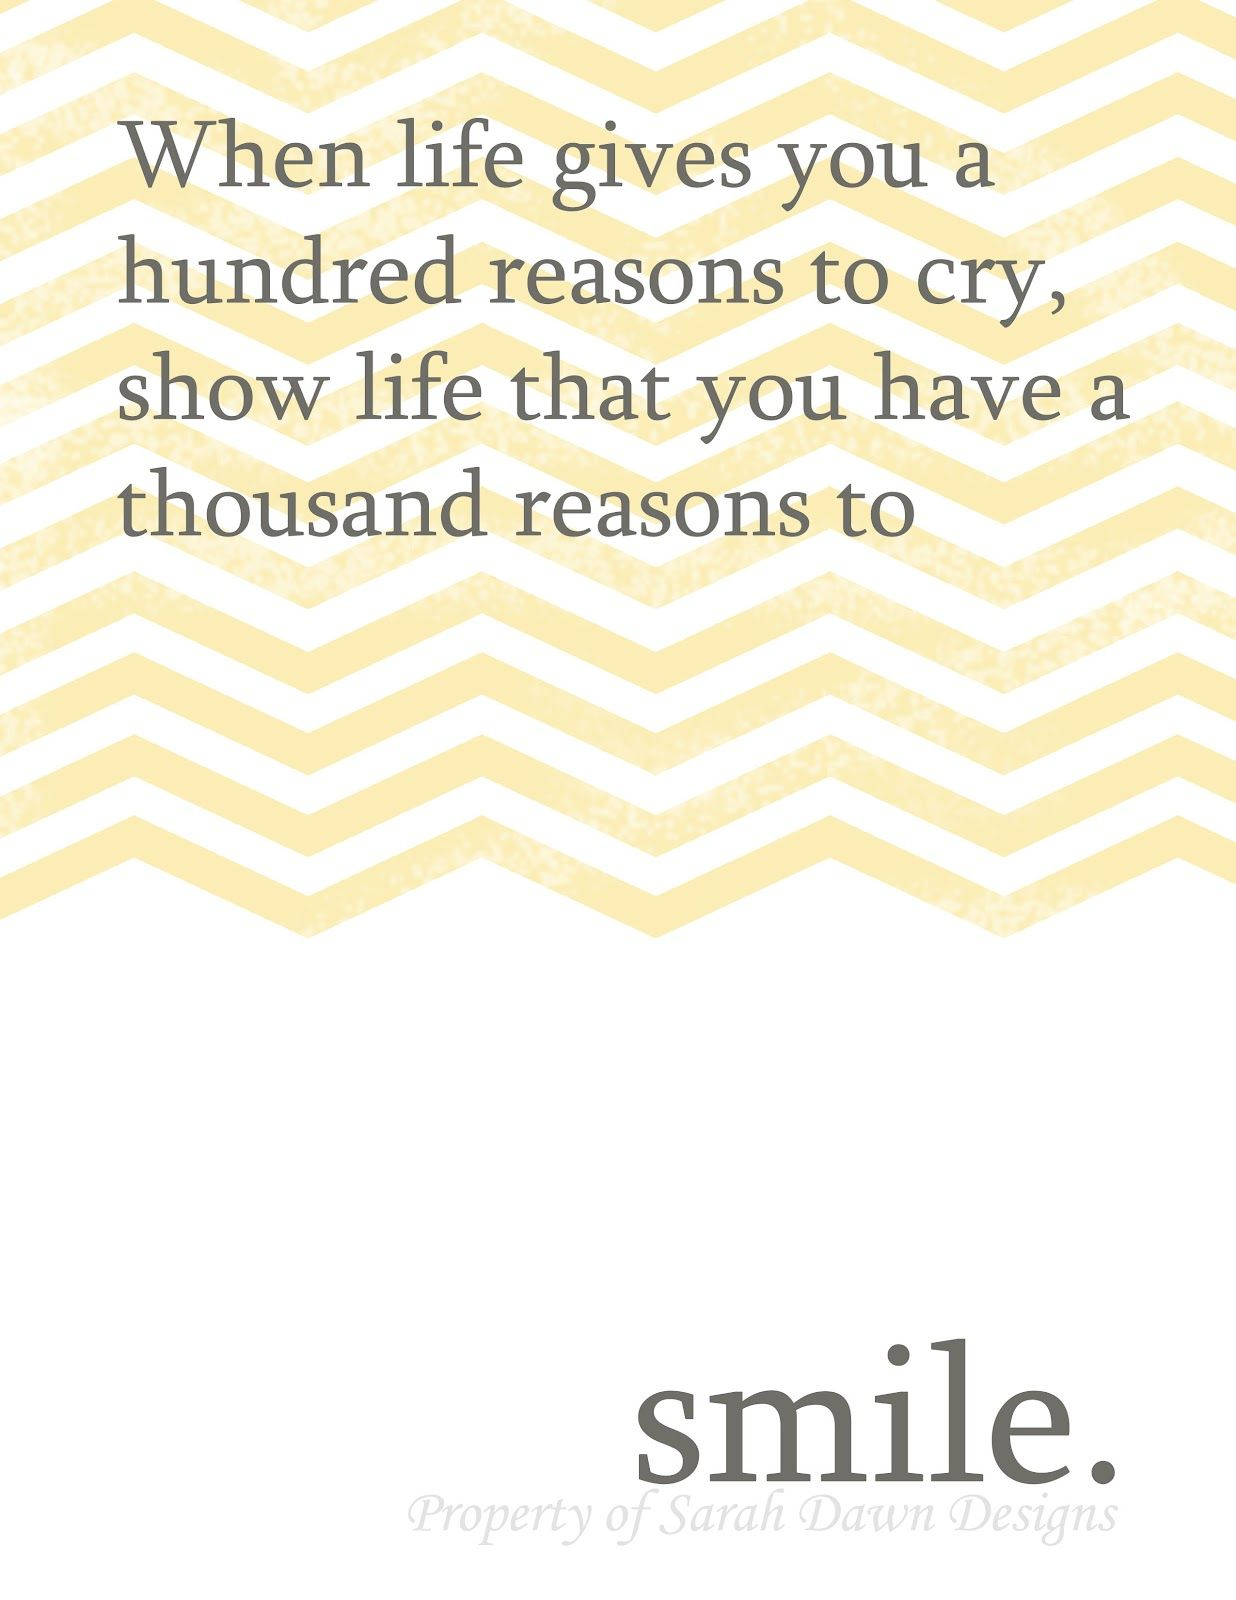 Quotes That Make You Smile Stand Up And Be Strongsarah Dawn Designs Printable Quotes To